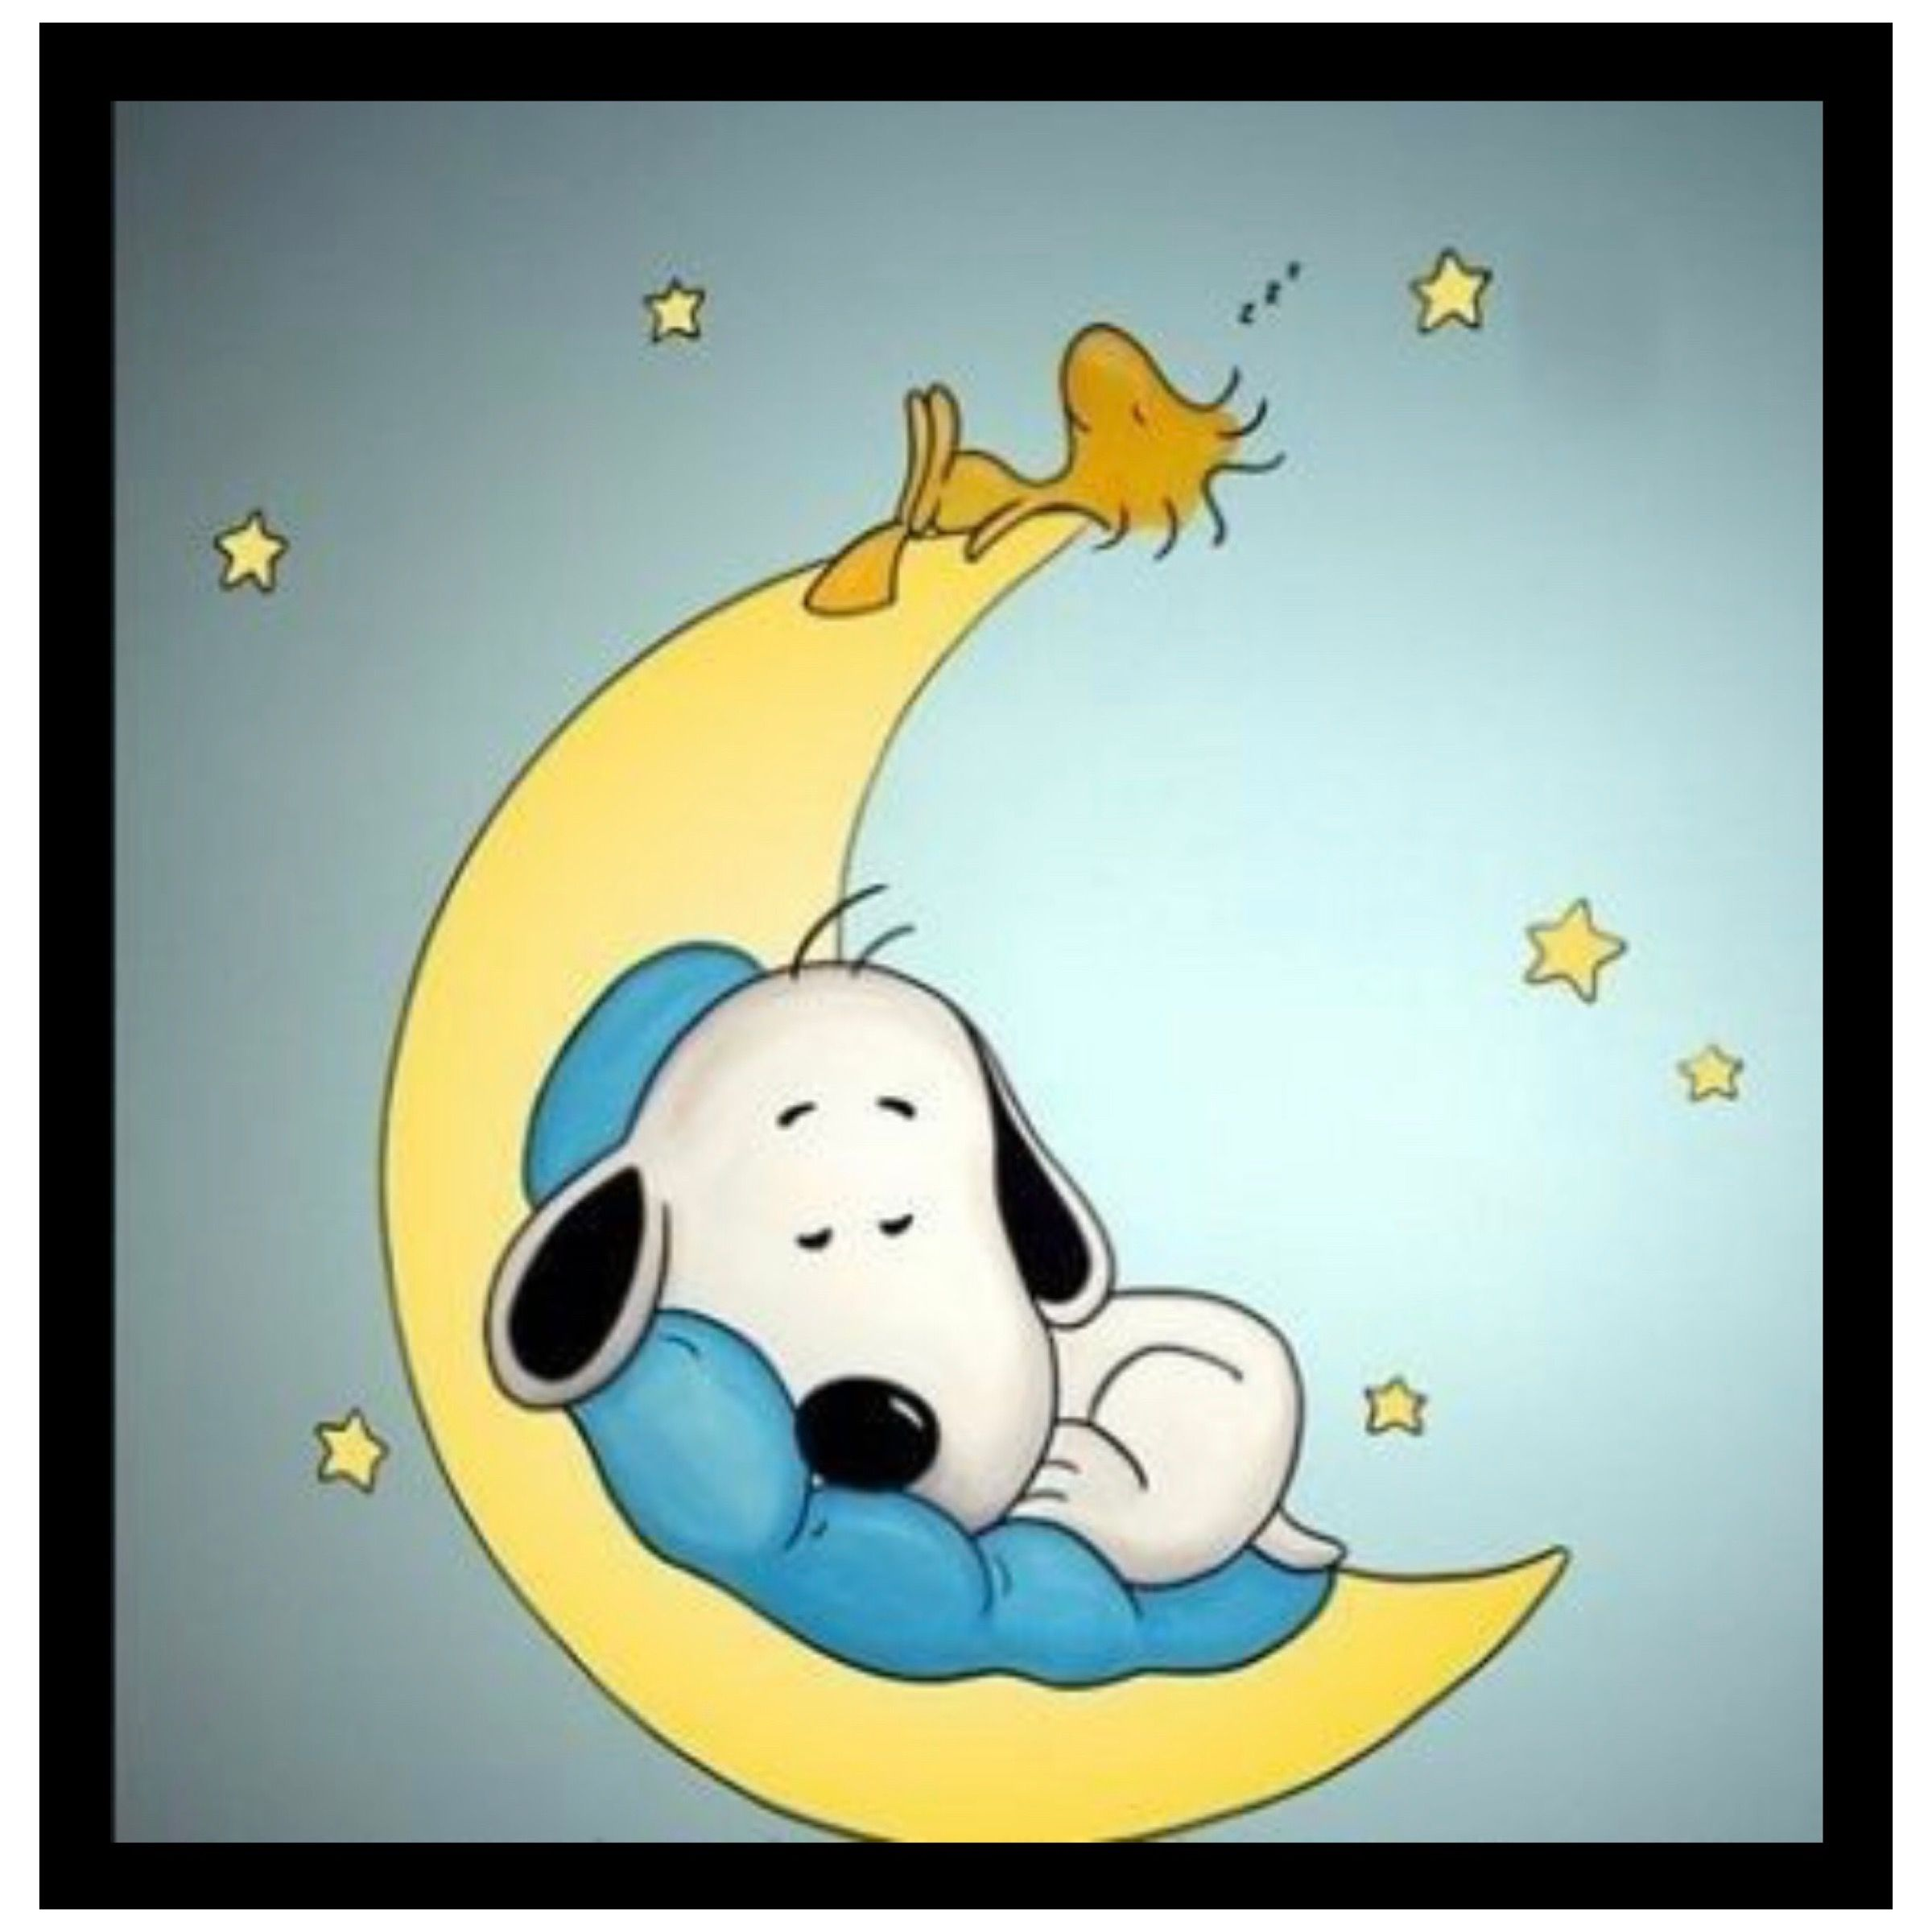 Good Night With Images Snoopy Sleeping Baby Snoopy Snoopy